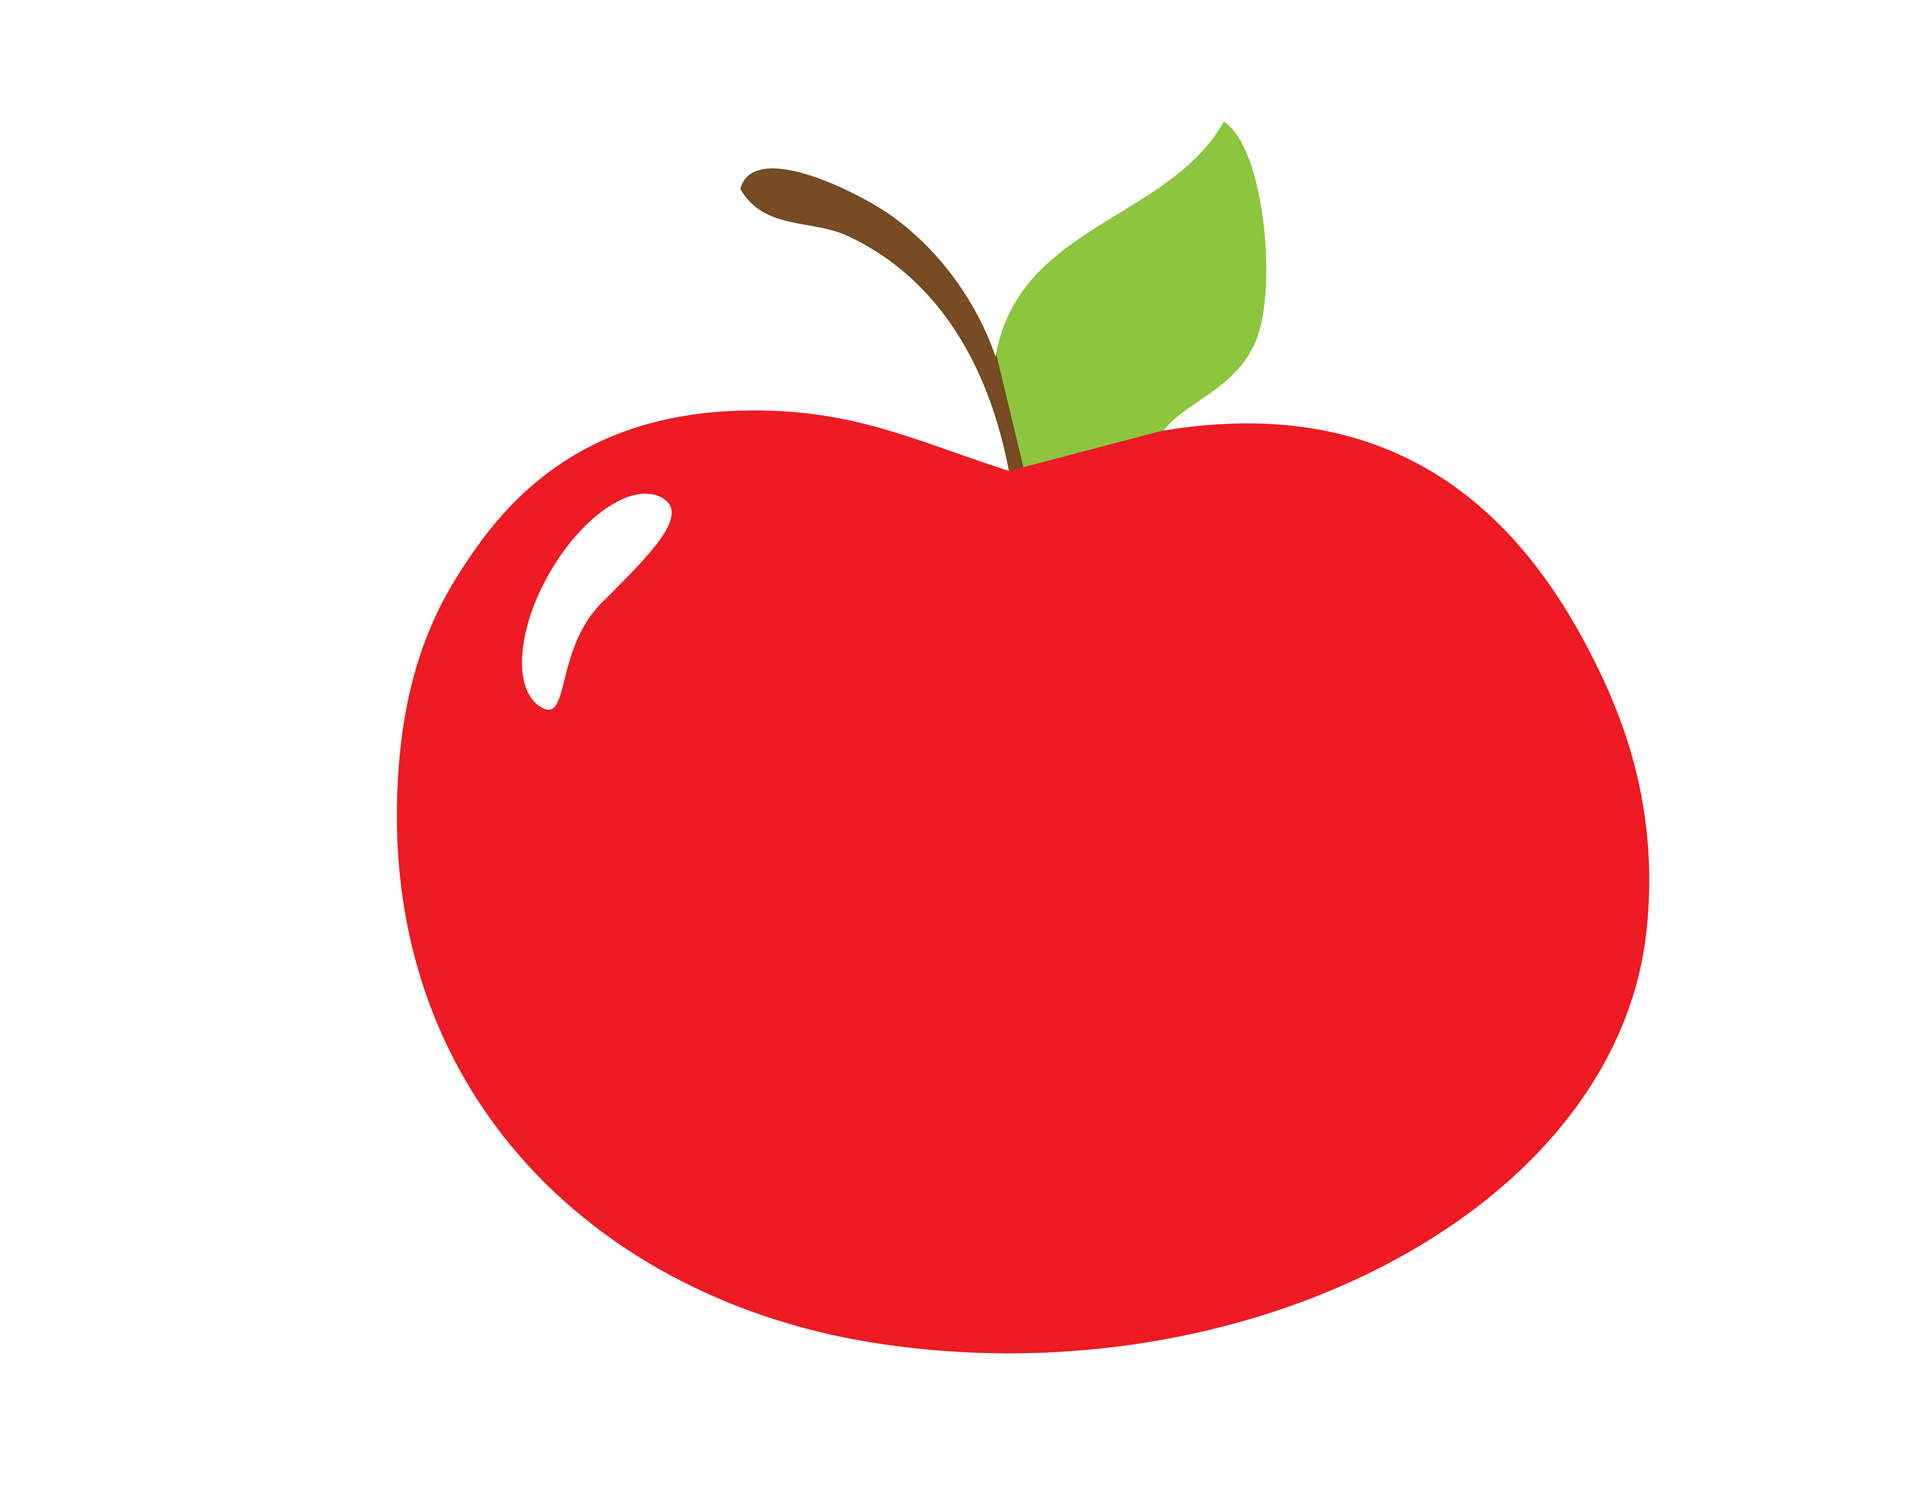 Red free stock photo. Apple clipart